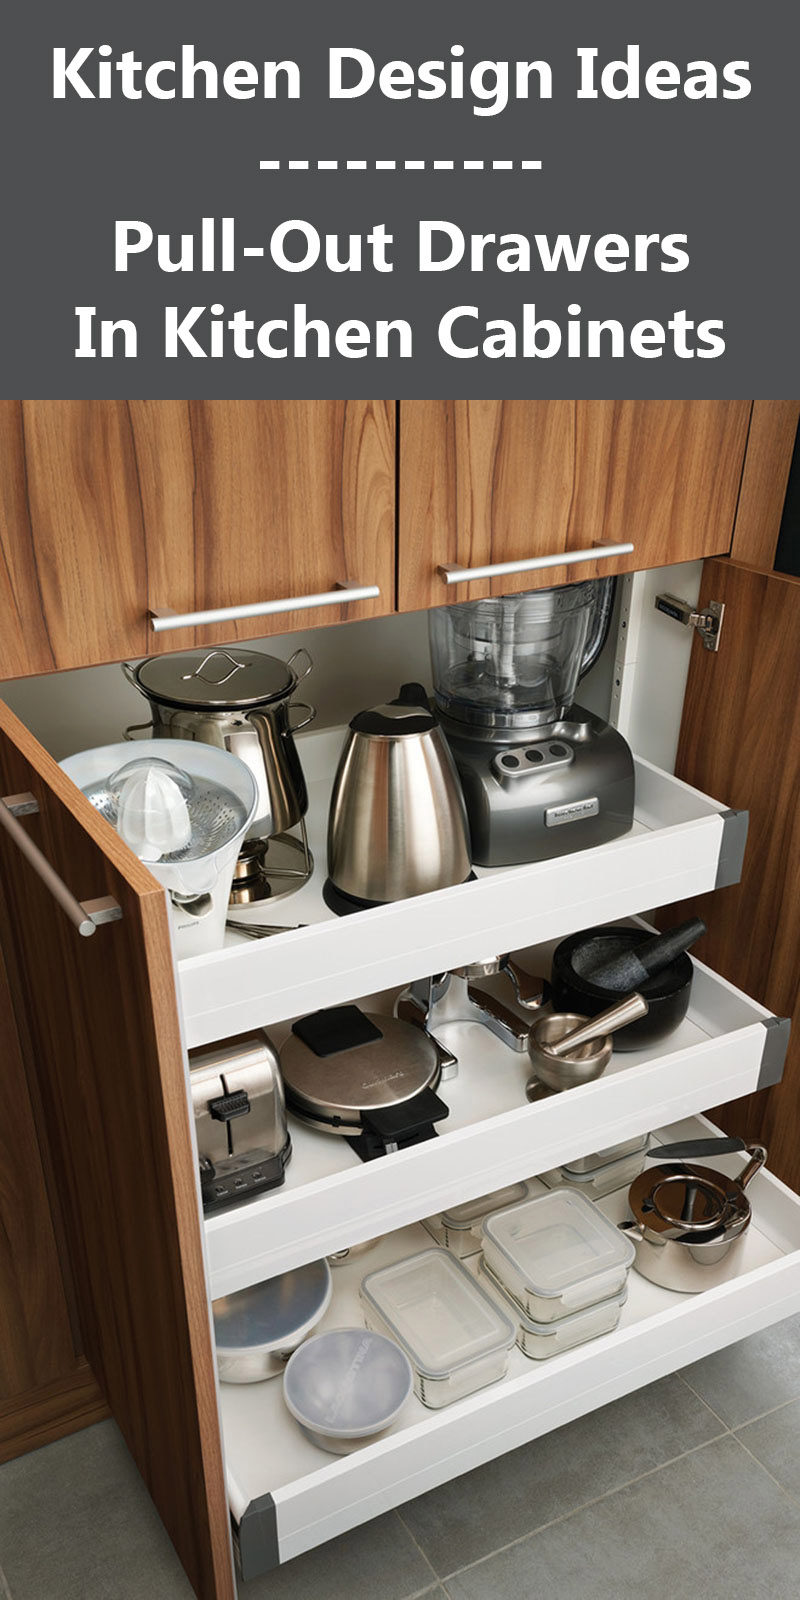 Kitchen Cabinet Drawers Kitchen Design Ideas Pull Out Drawers In Kitchen Cabinets